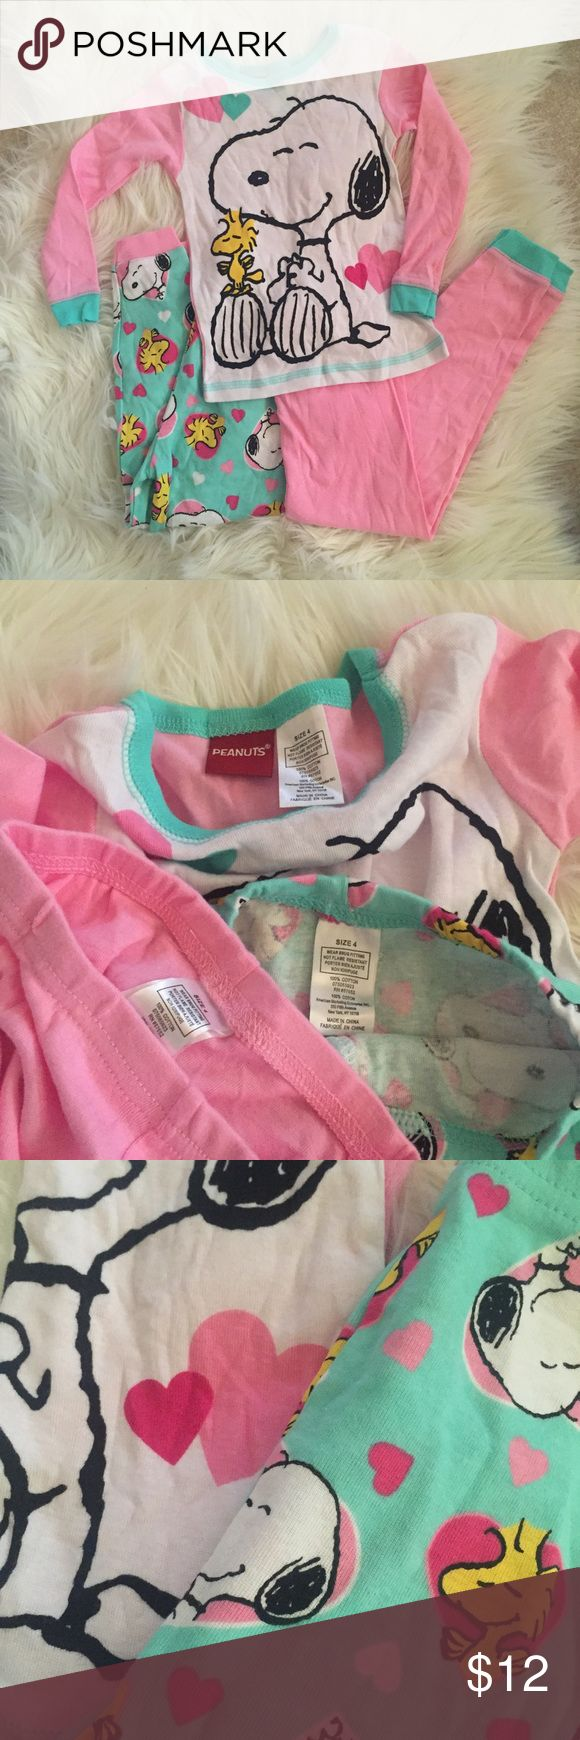 3-Piece Snoopy Pajamas Set Adorable 3 piece Snoopy pajamas set by Peanuts. Size 4. Long sleeved top and two long johns. Hope you enjoy ❤️ NOT Hanna Andersson -- just for visibility! Hanna Andersson Pajamas Pajama Sets